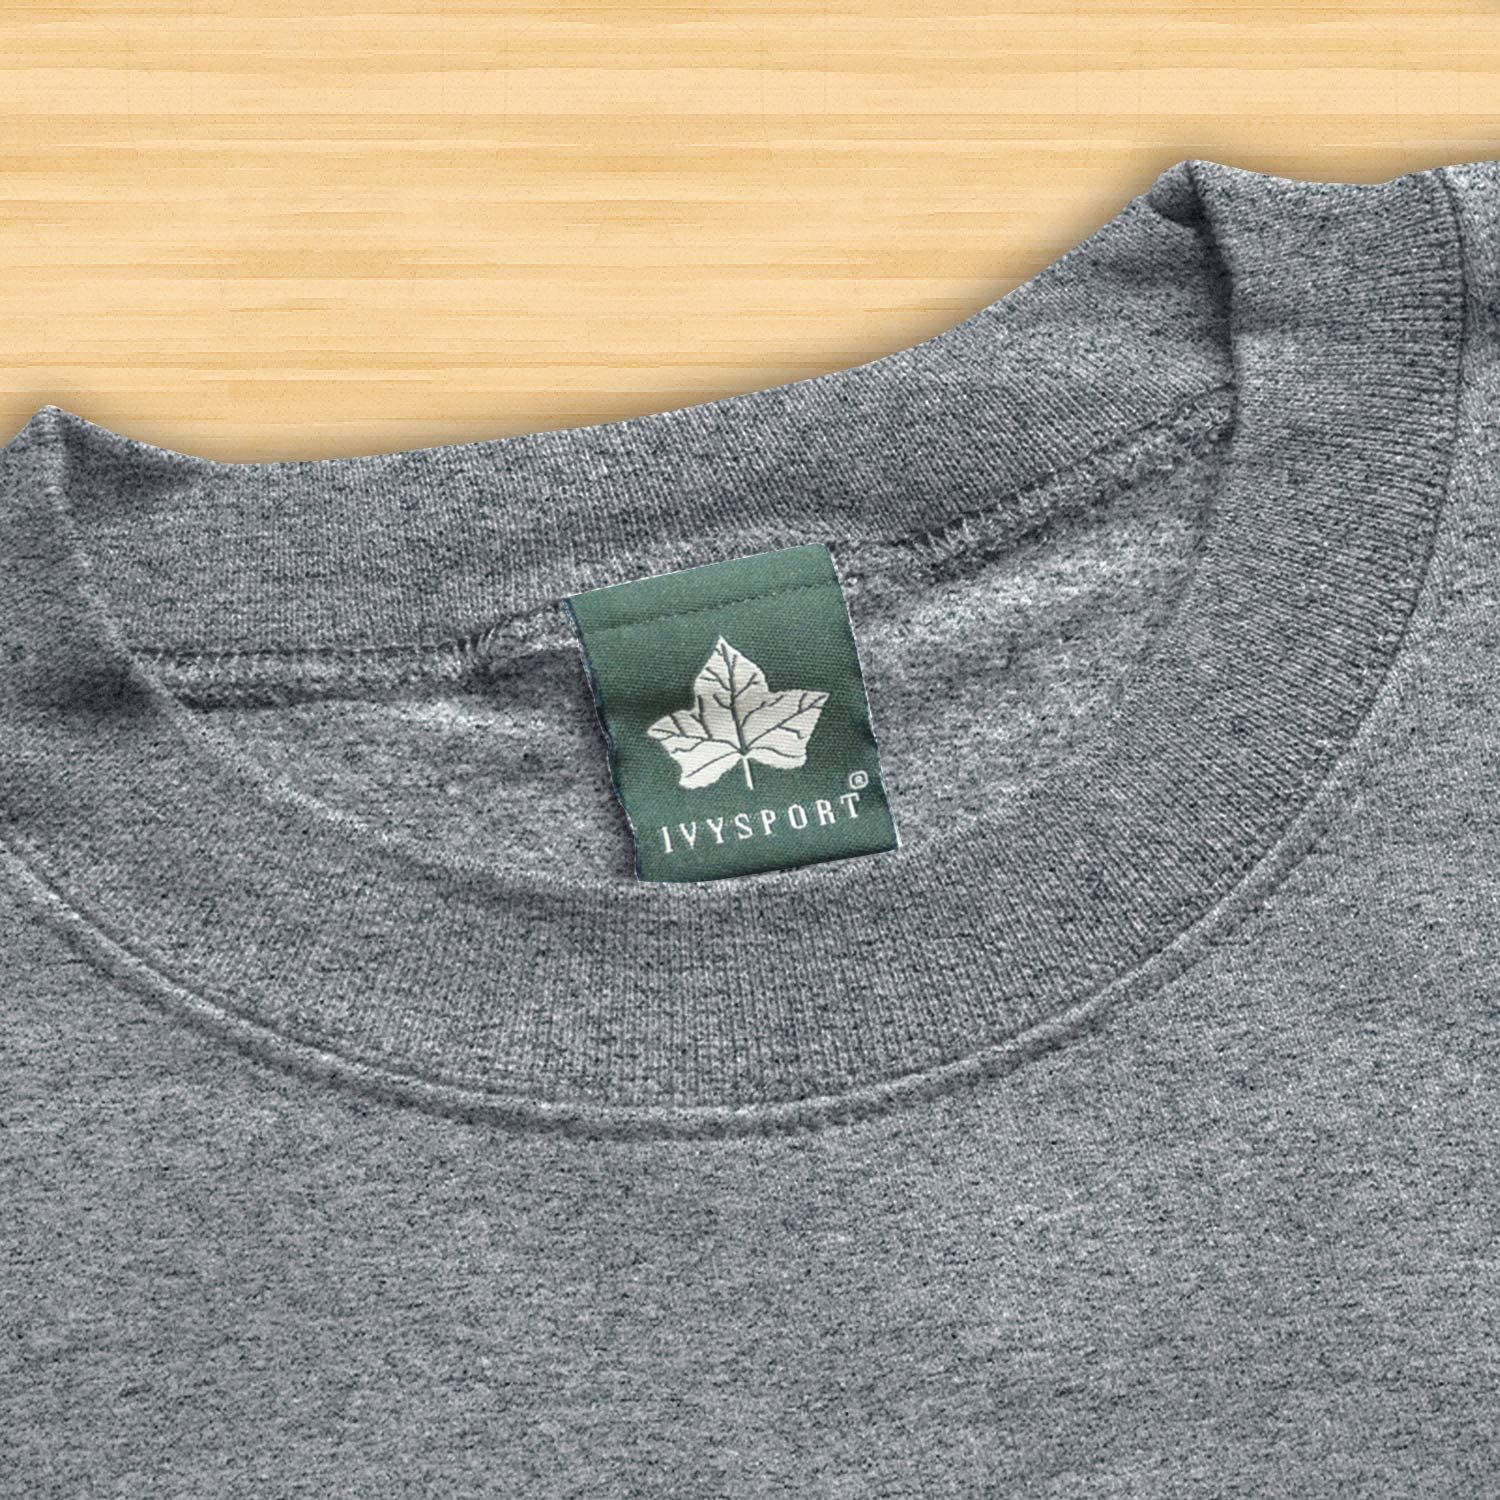 Ivysport Crewneck Sweatshirt Classic Logo Premium Grey Heavyweight Cotton Blend